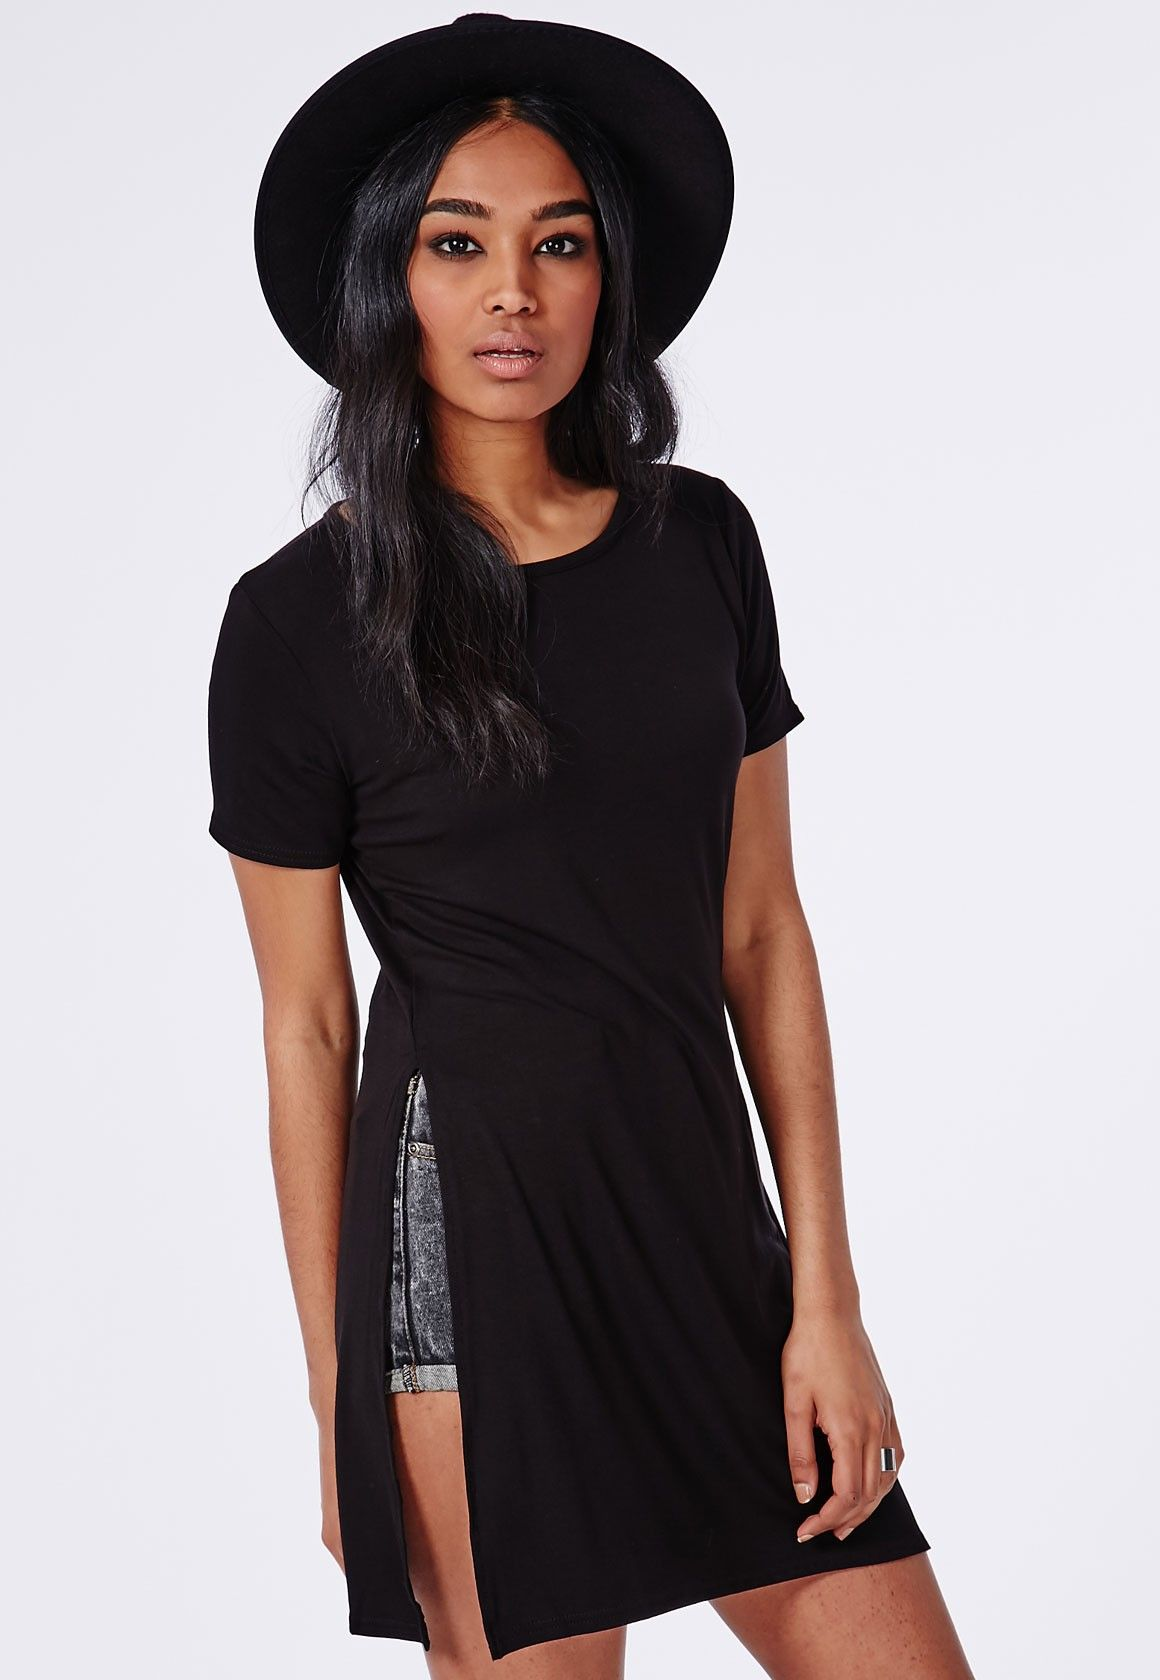 Missguided - Split Side T-Shirt Black | Future concert | Pinterest ...